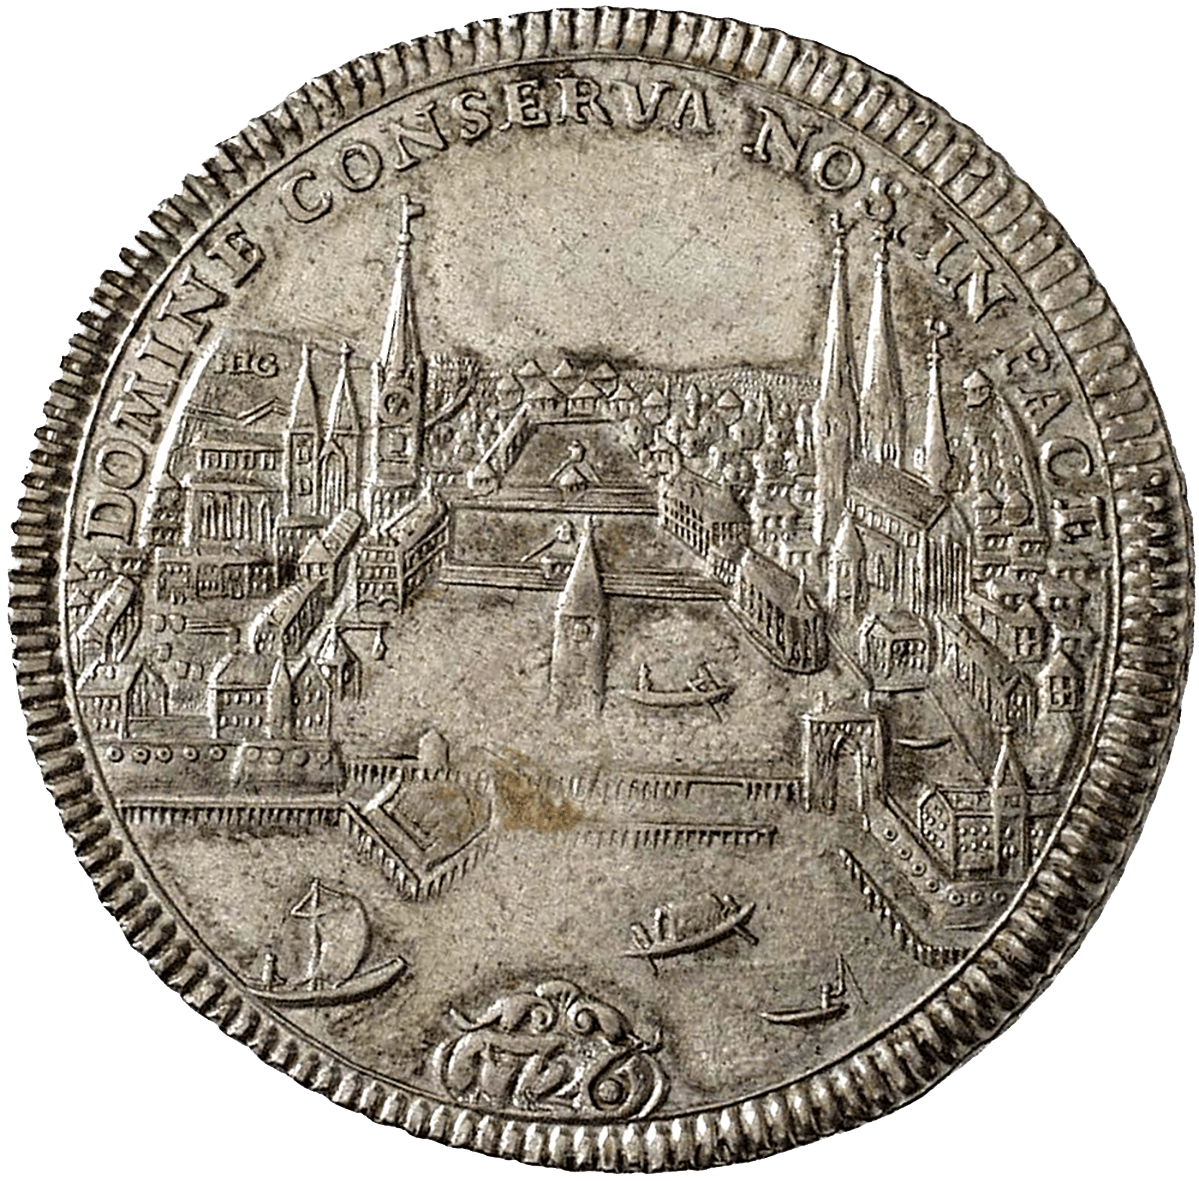 Republic of Zurich, Taler 1726 (reverse)